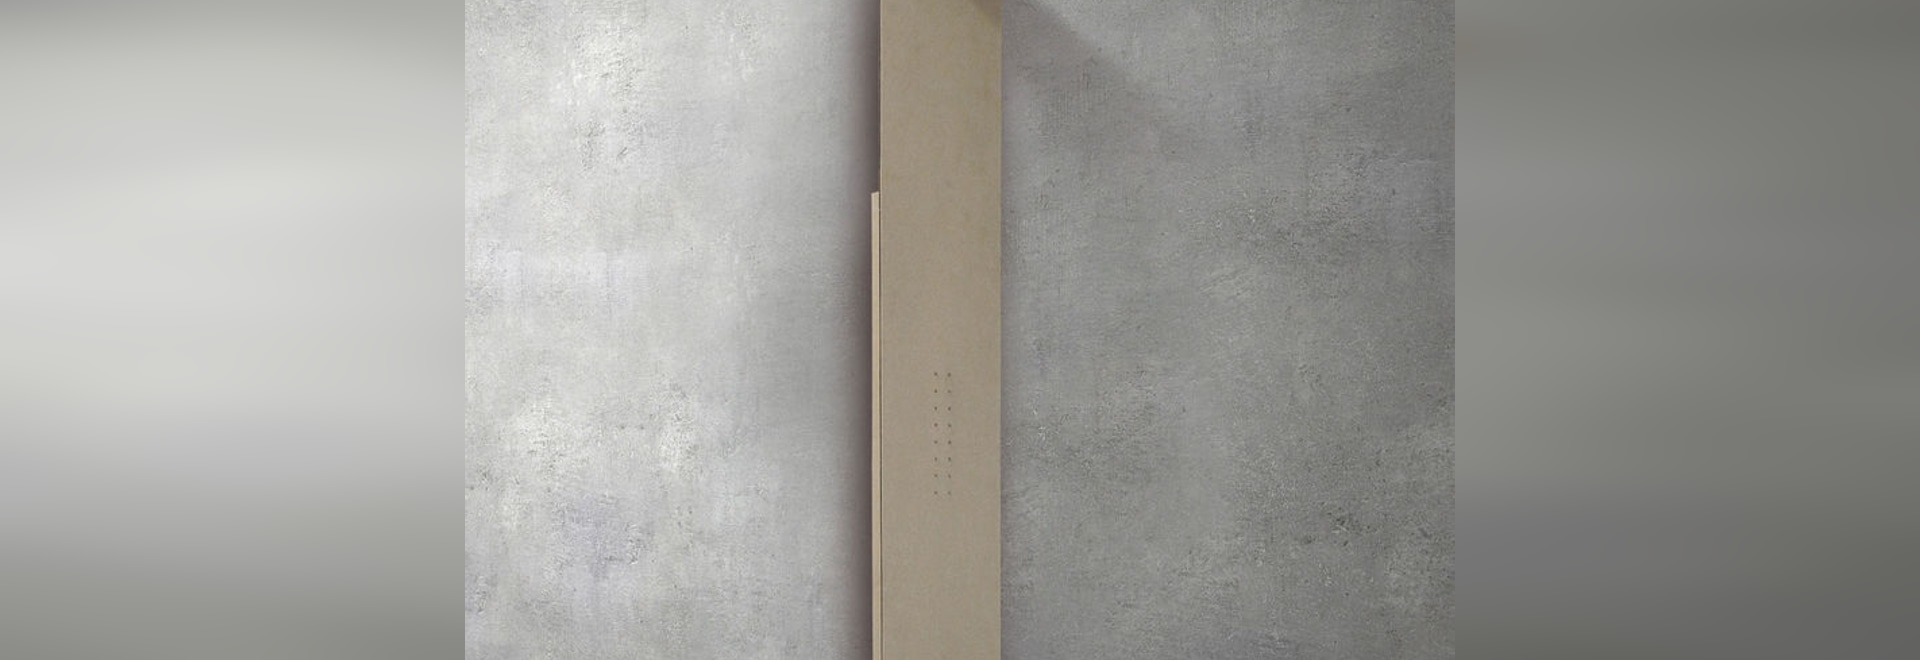 NEW SHOWERWAVE thermostatic shower column by GLASS 1989